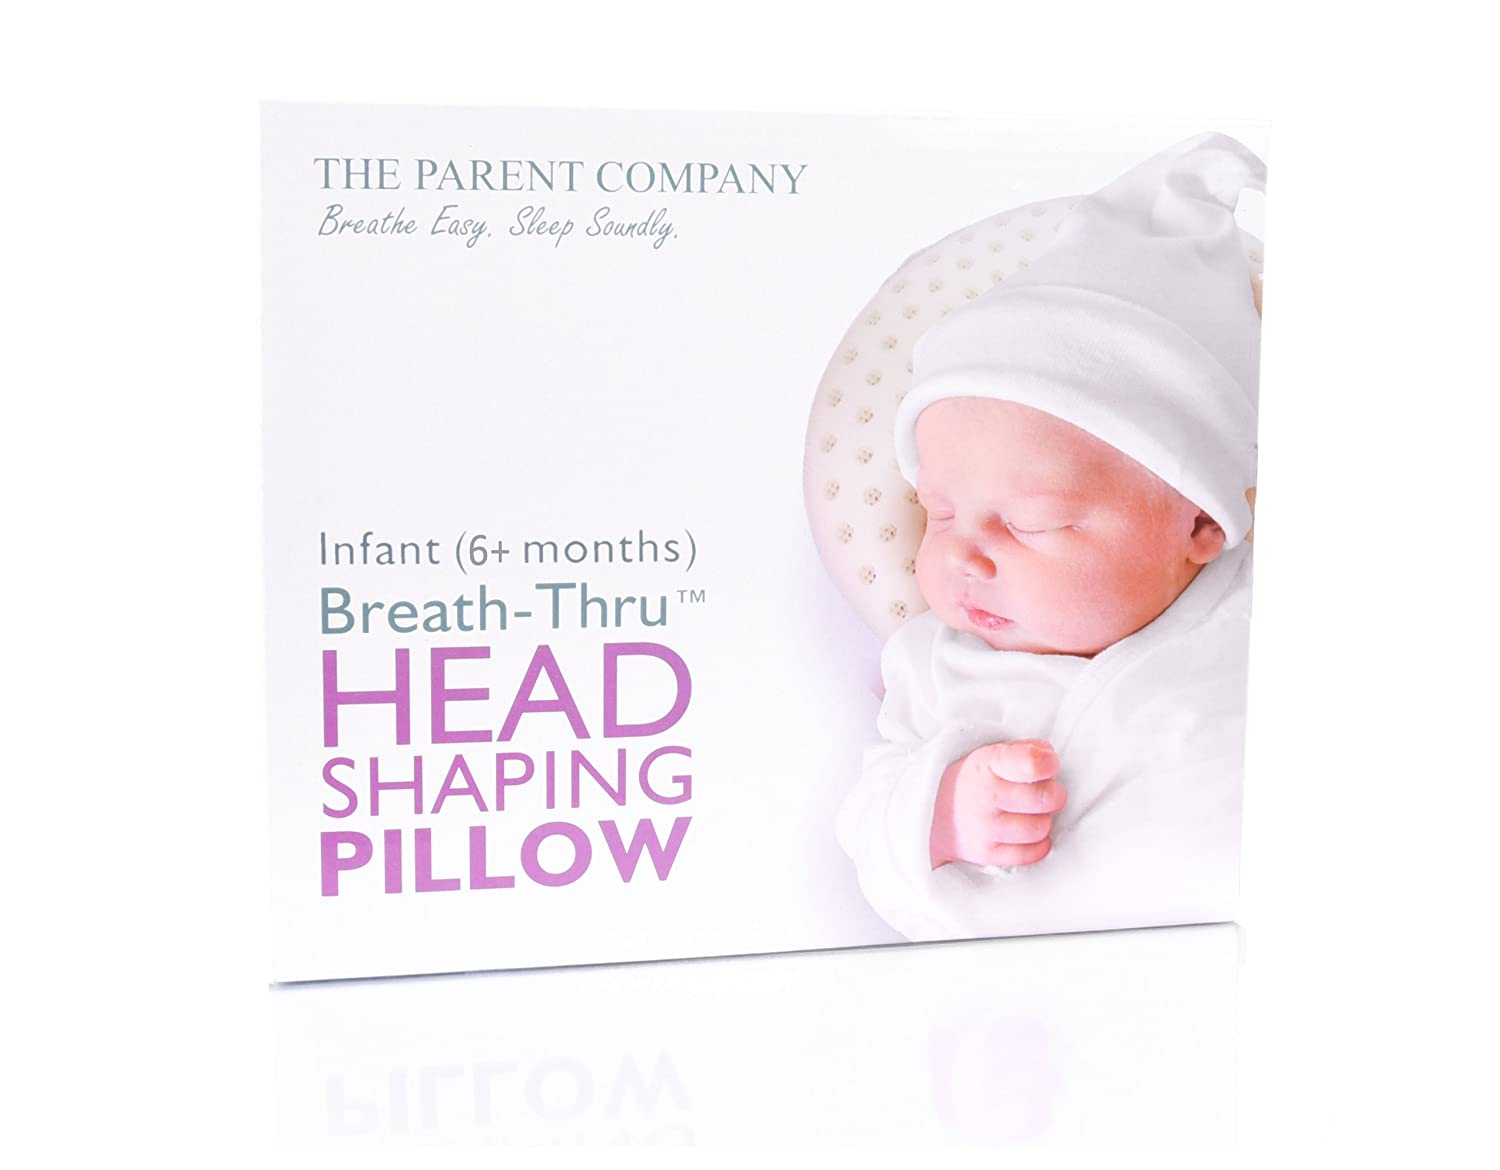 The Parent Company | Breathe-Thru Head Shaping Baby Pillow & Pillowcase | Breathable Design & Ultra-Soft Memory Foam Head Support | For Newborns (0-6 Months)